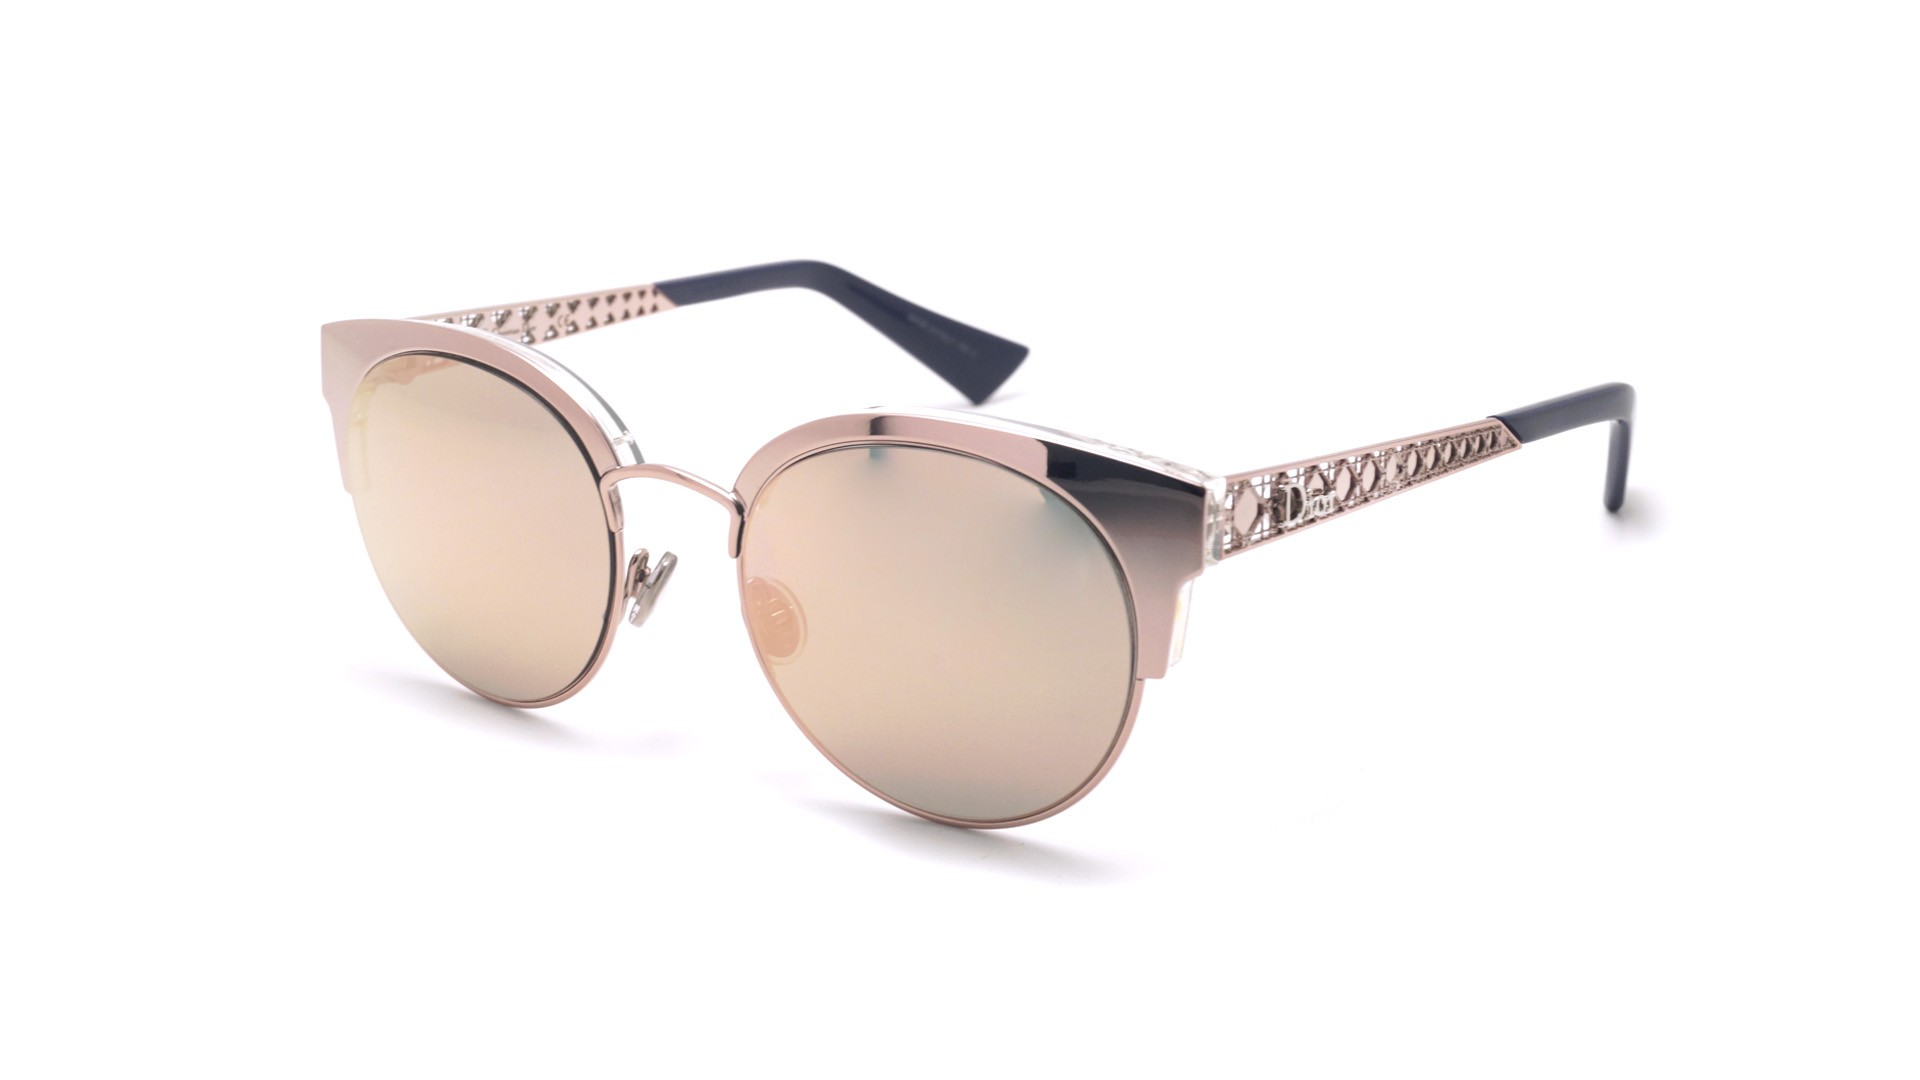 13037b6ca5 Sunglasses Dior Diorama Mini Gold DIORAMAMINI S8R0J 50-19 Medium Mirror